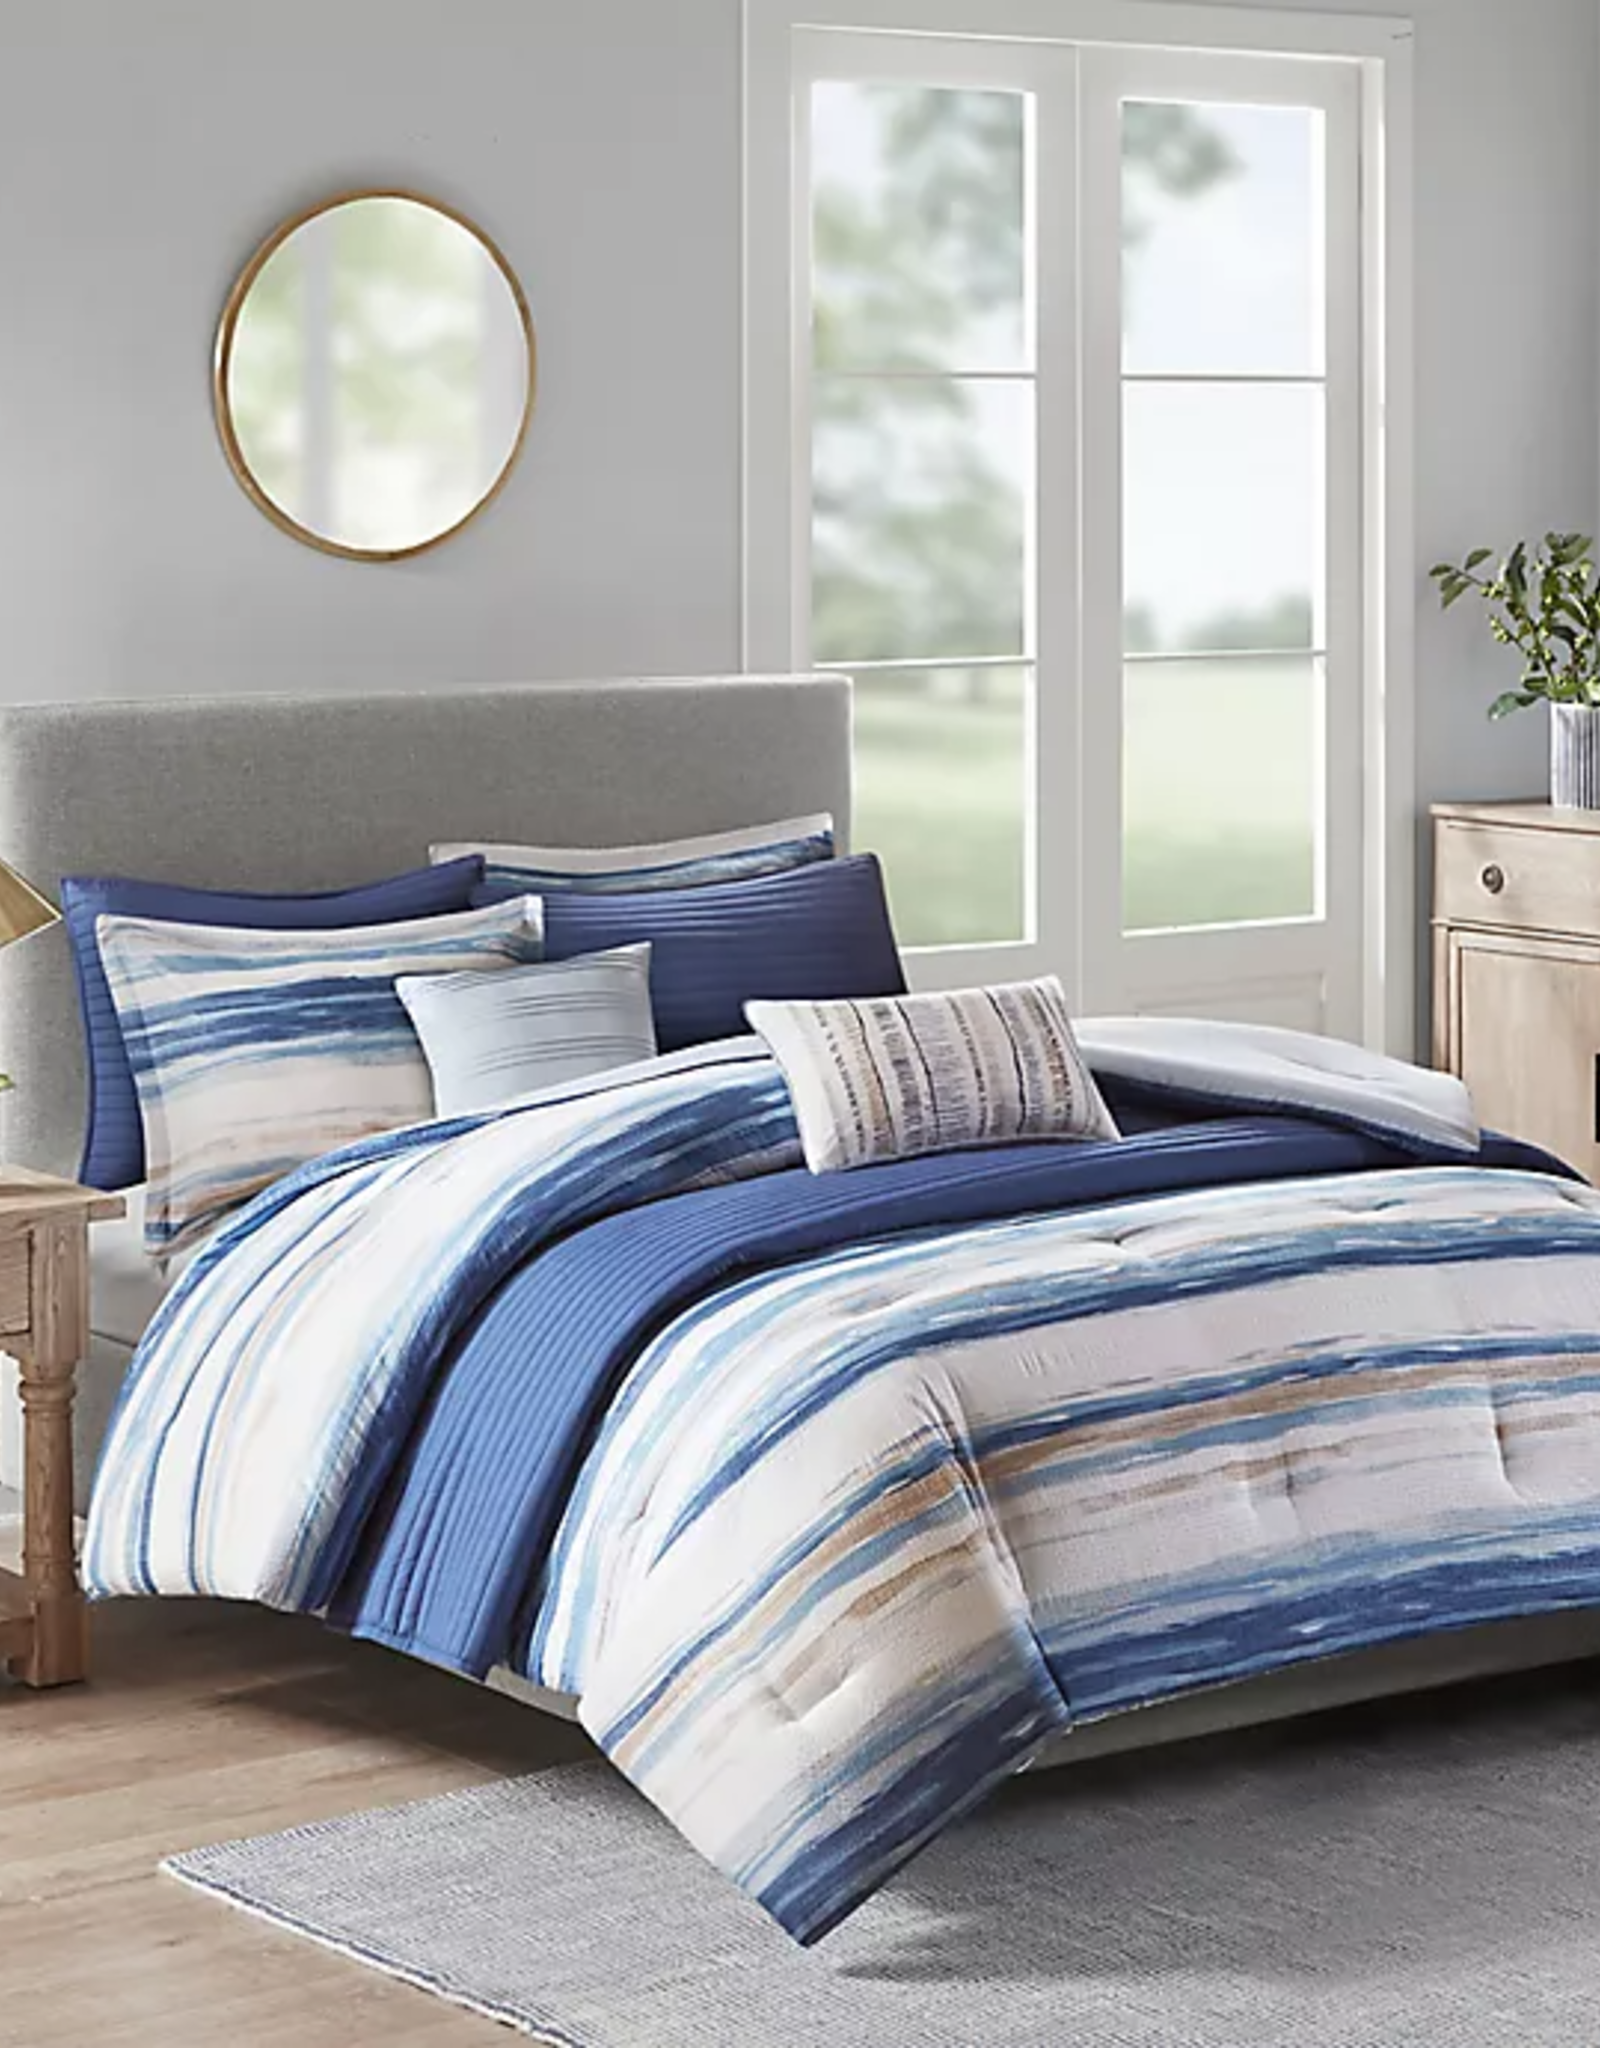 JLA HOME/E & E CO LTD Madison Park King/Cal King 8 Piece Printed Seersucker Comforter & Coverlet Set Collection in Blue